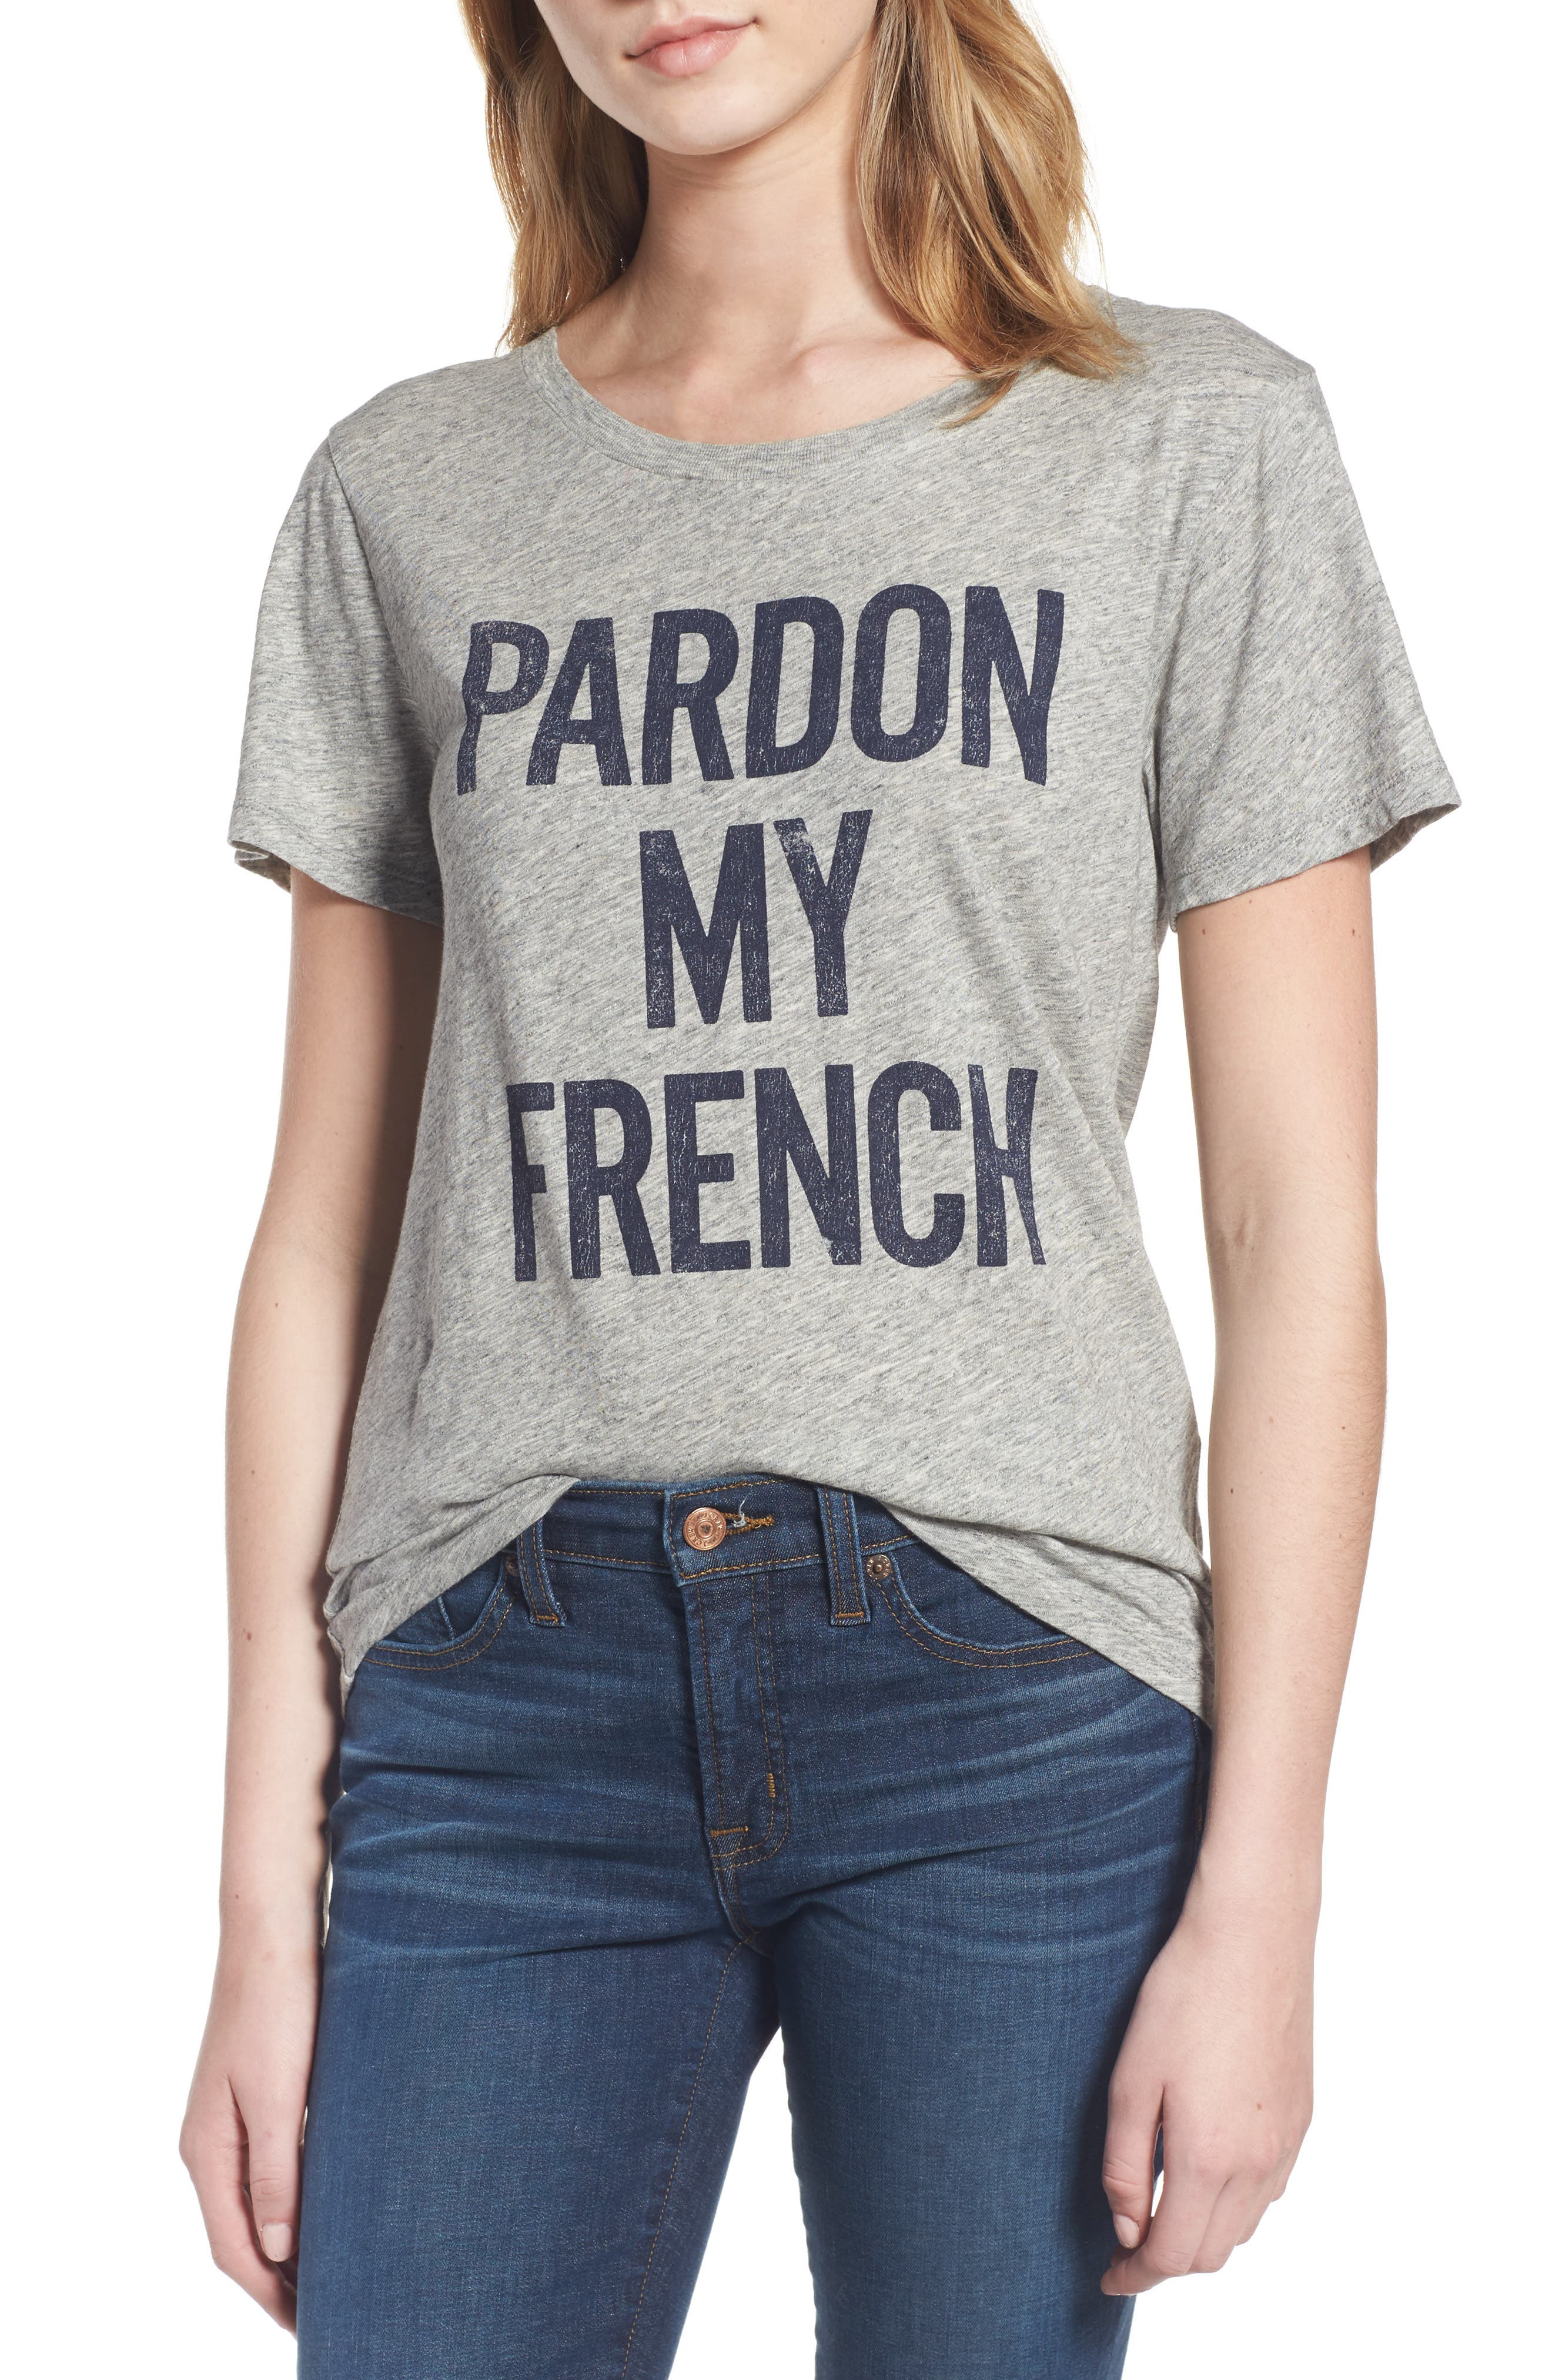 J.Crew Pardon My French Graphic Tee